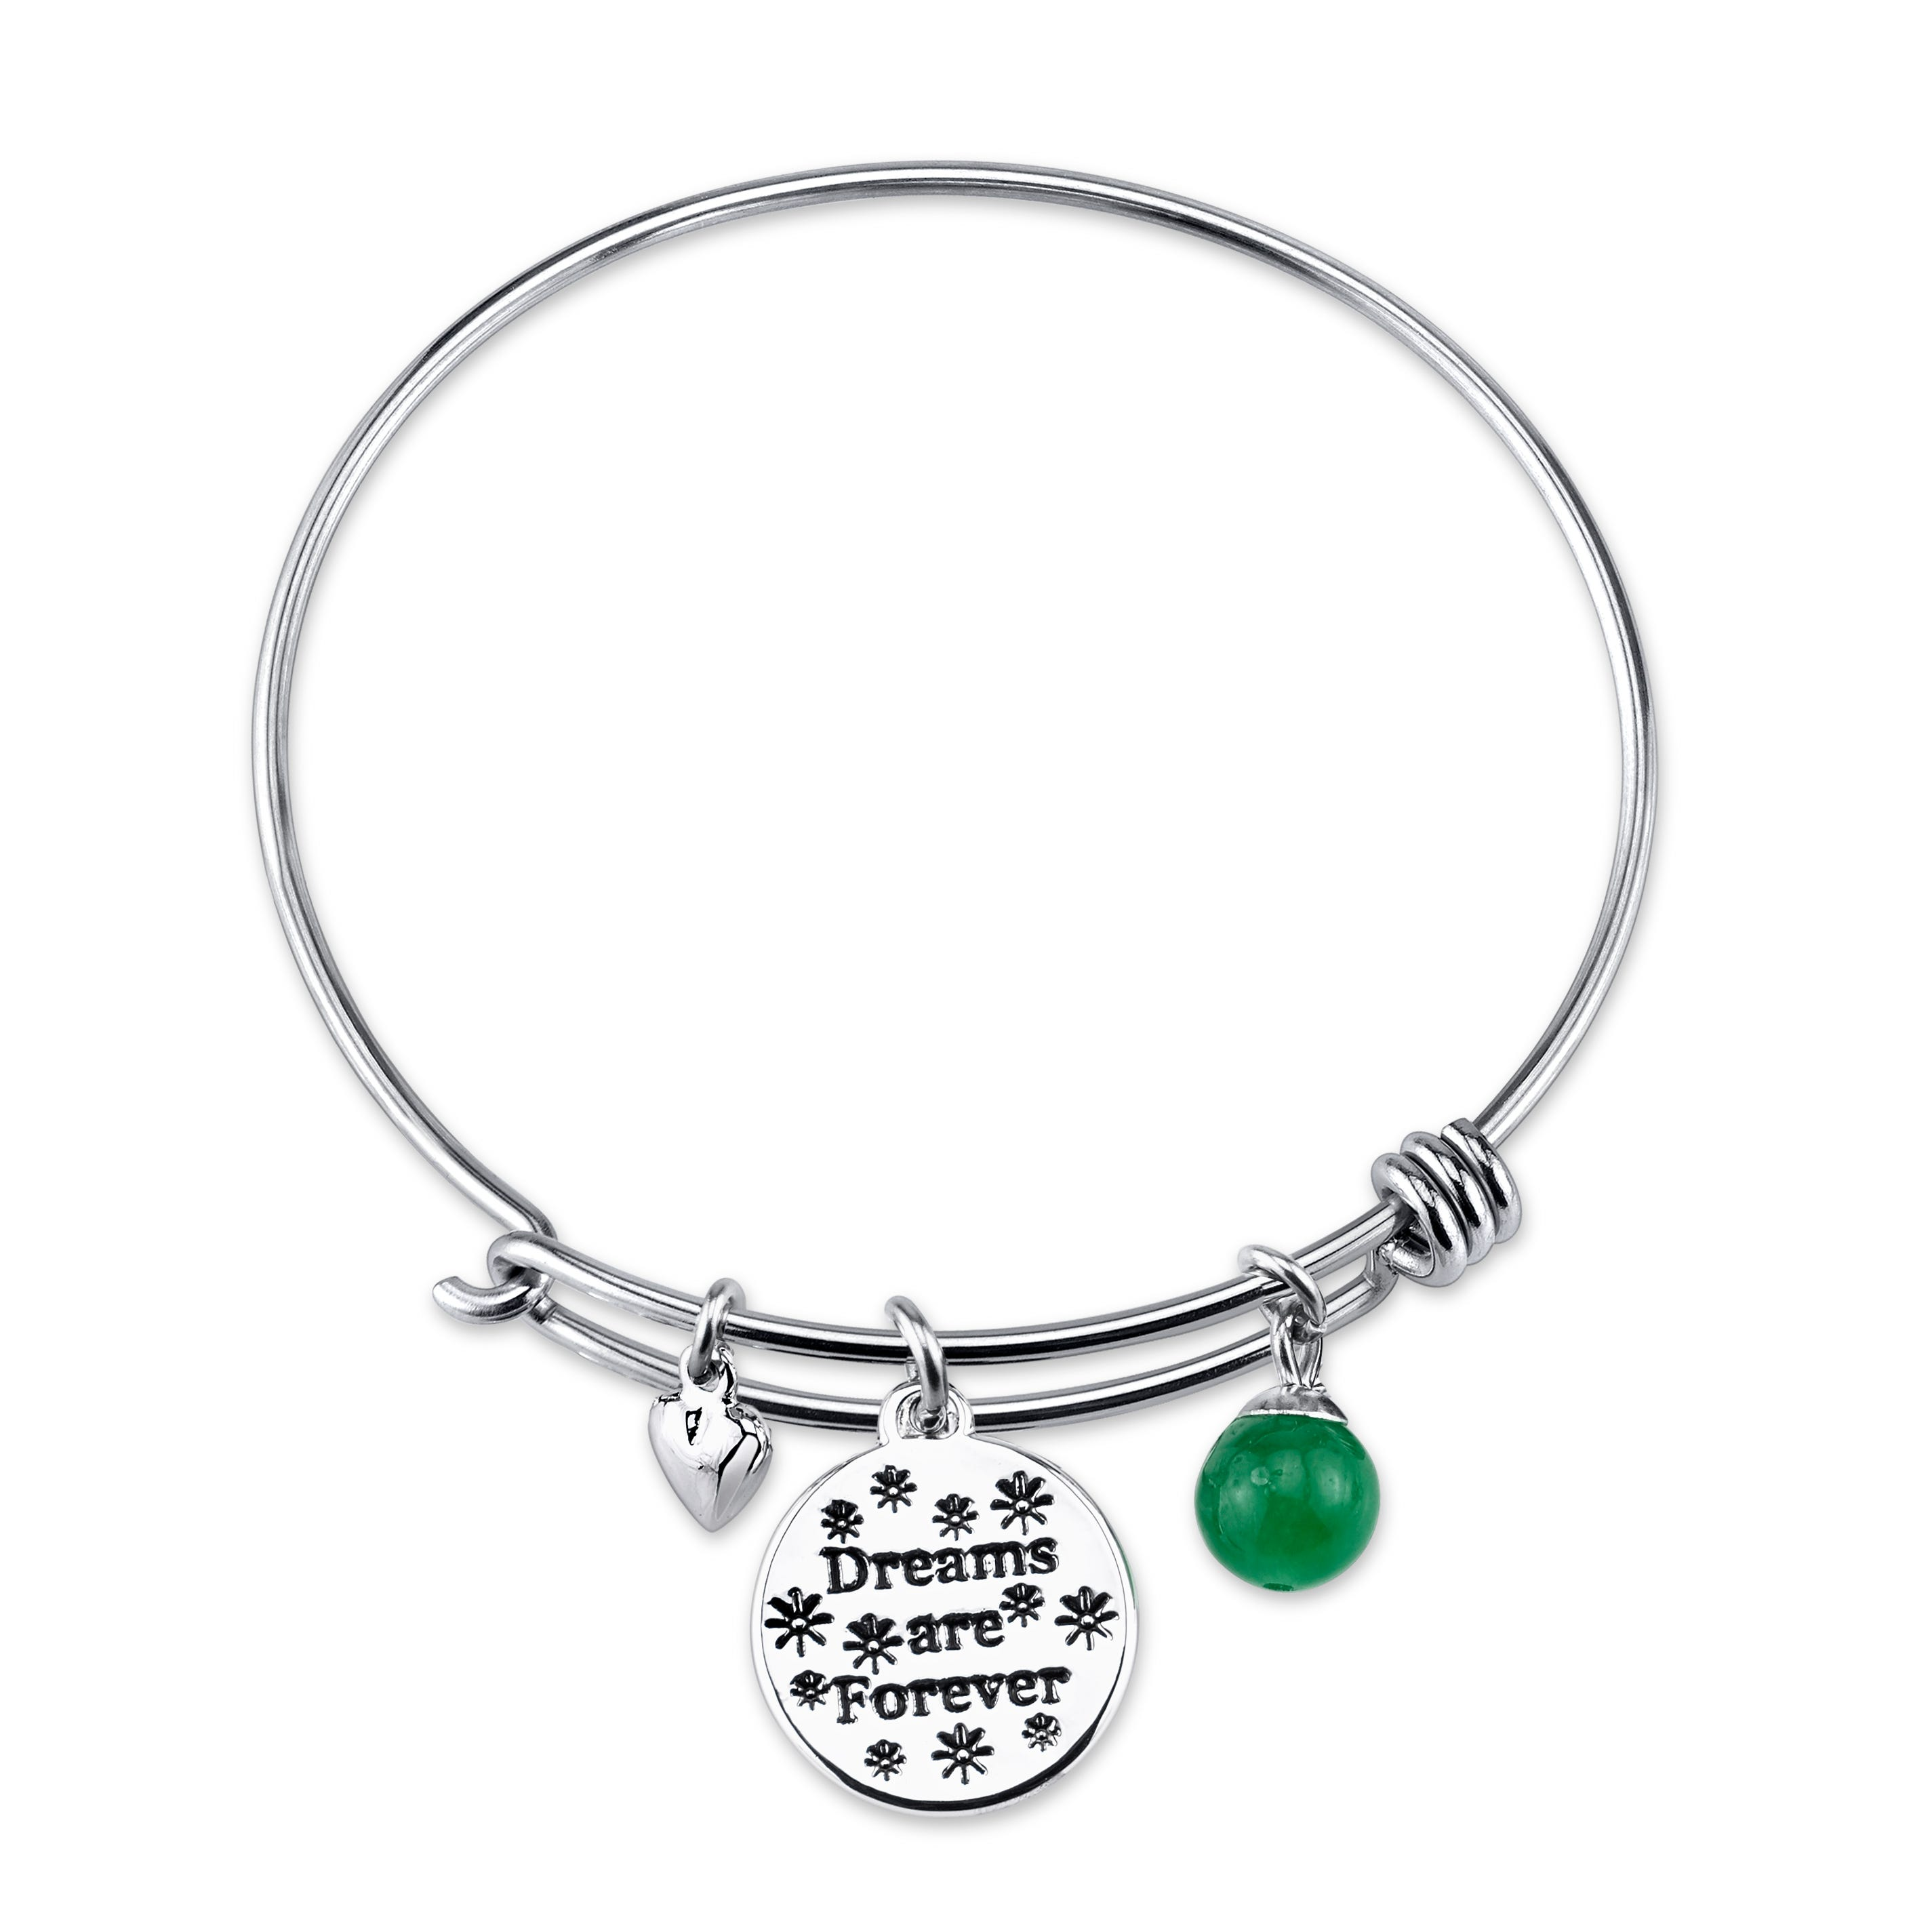 DISNEY© Tinker Bell Dreams Are Forever Sterling Silver Bangle